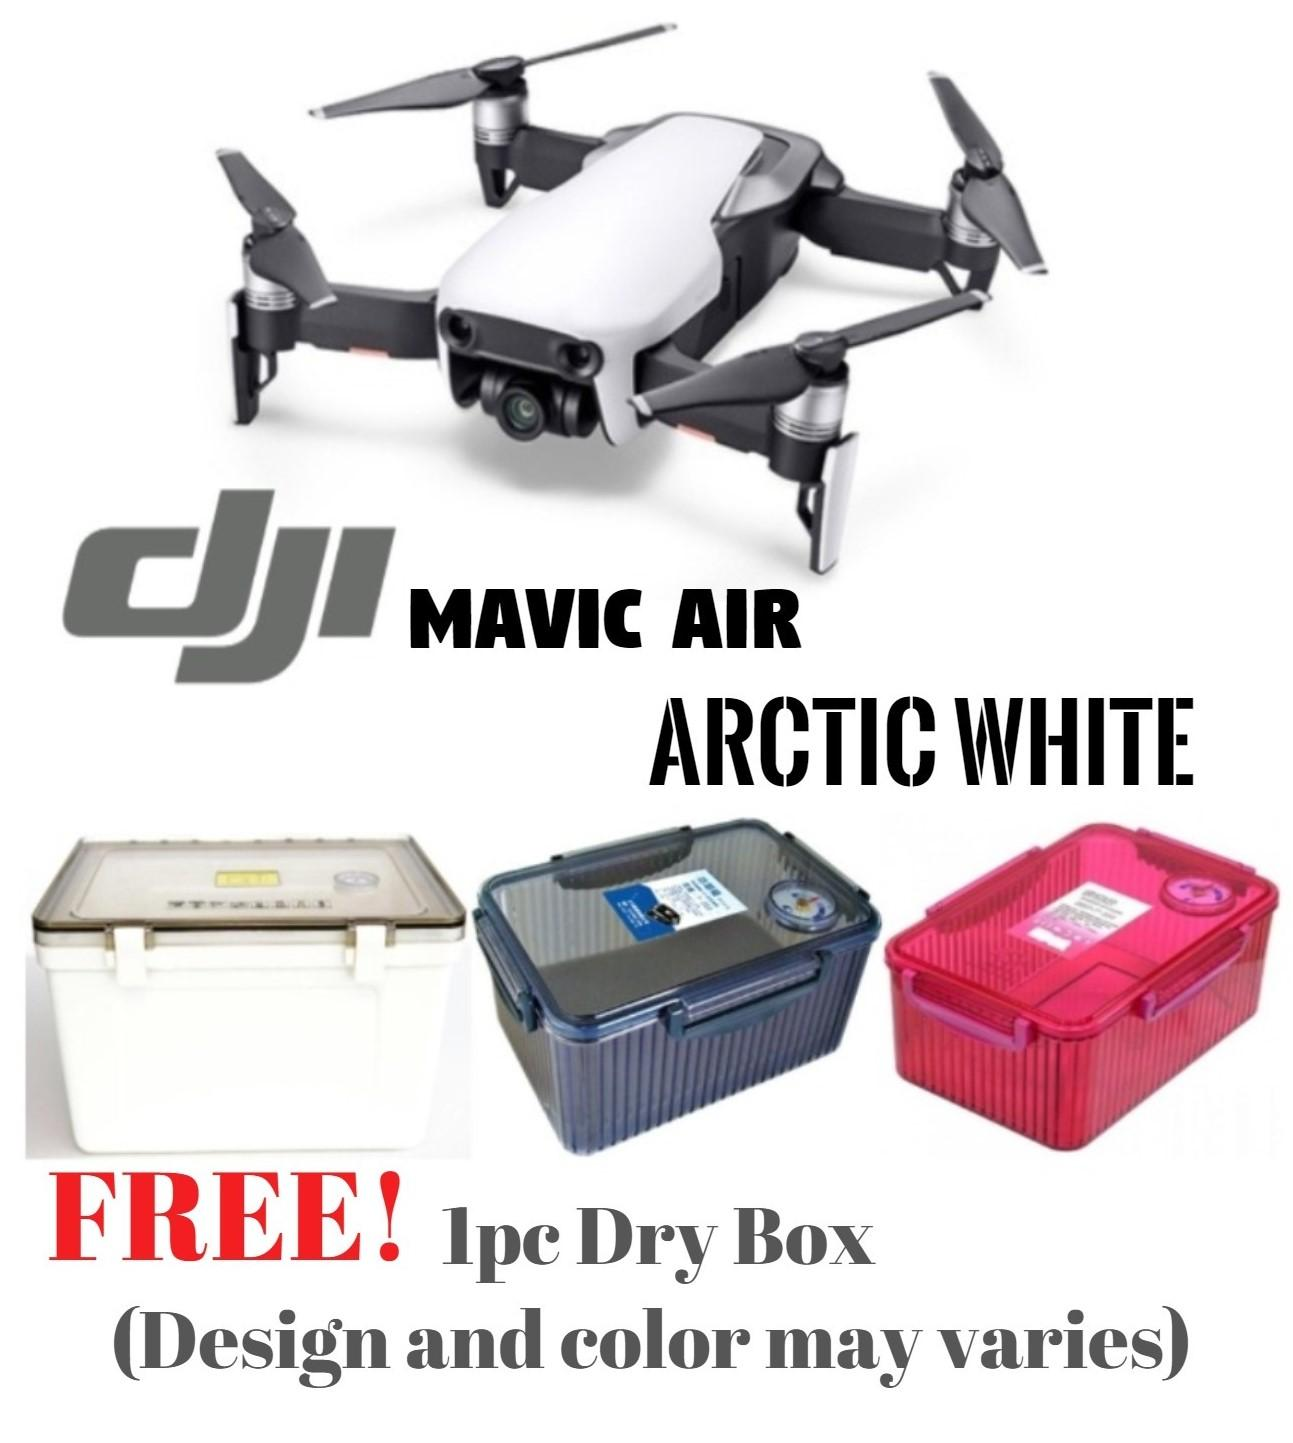 Dji Mavic Air With A Free Samurai Dry Box Online